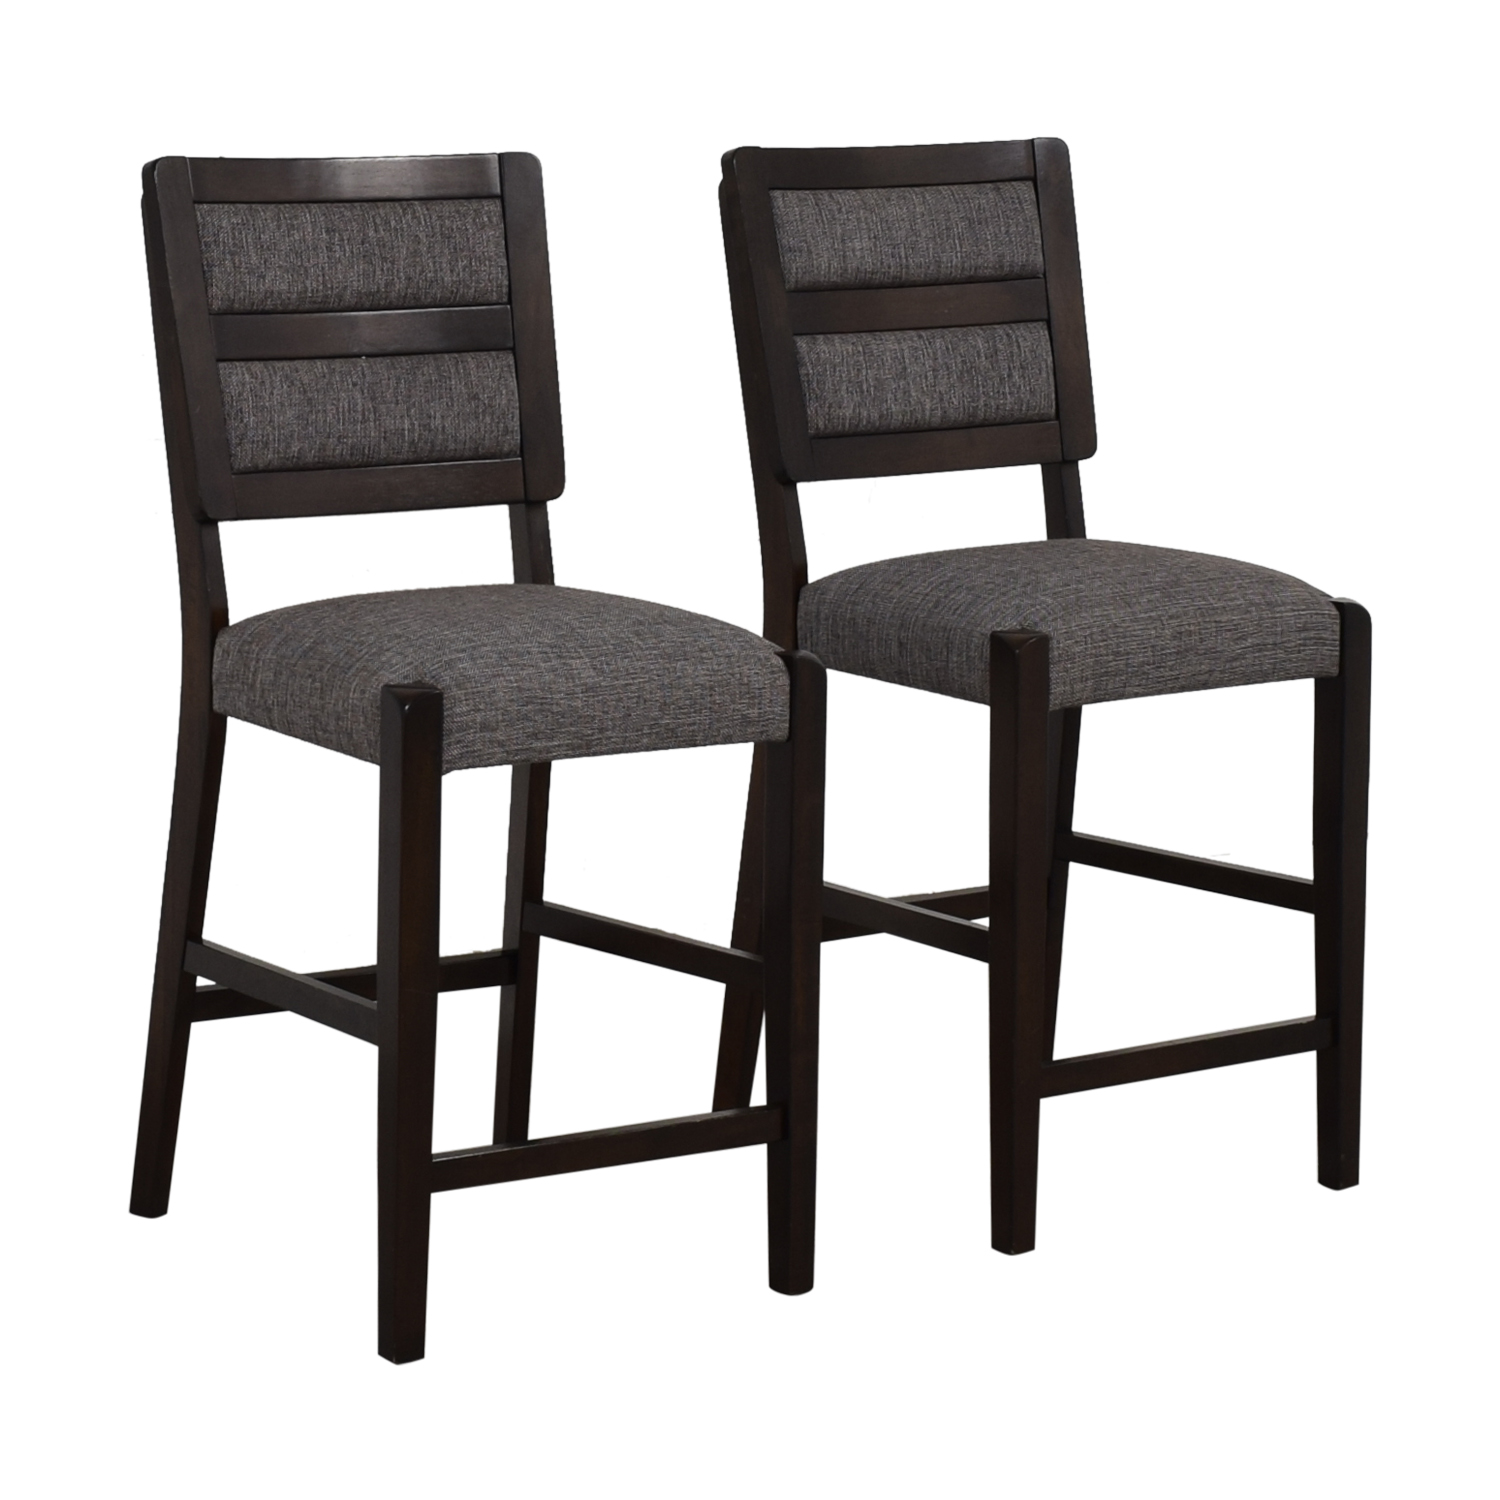 Raymour & Flanigan Grey Upholstered Counter Height Stools / Stools